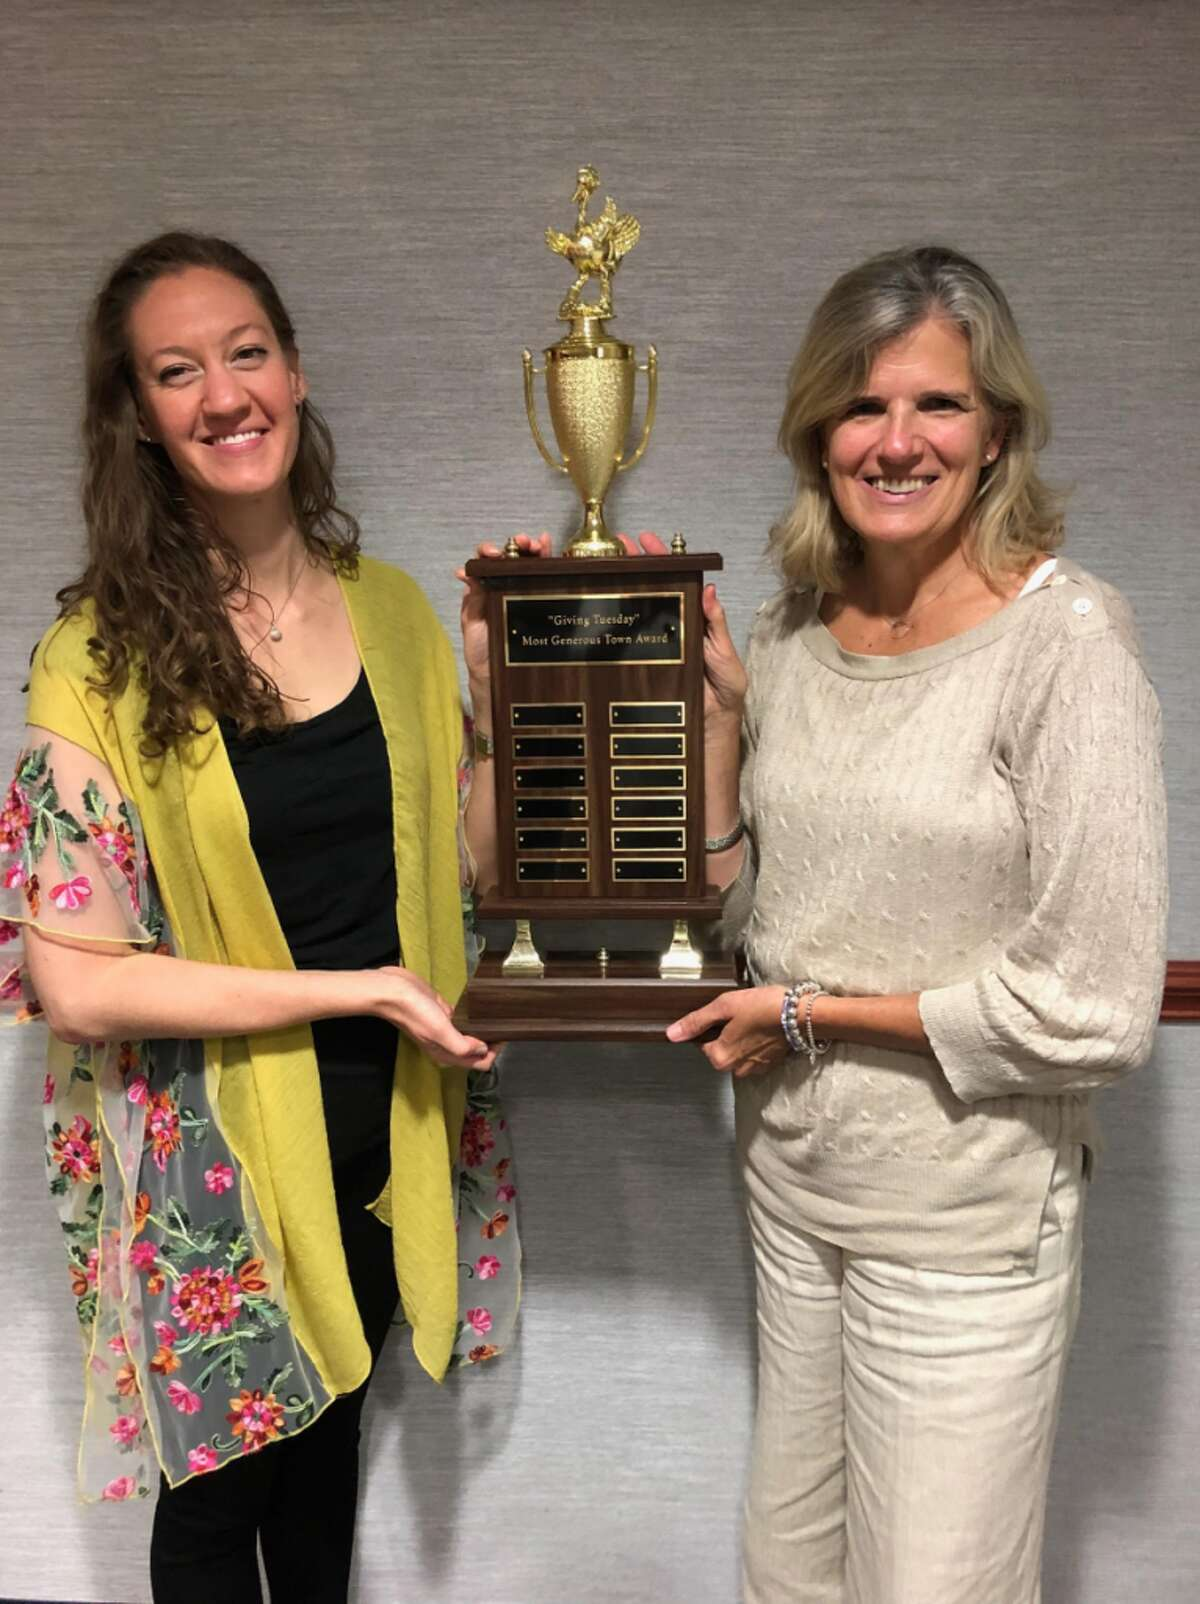 Lauren Patterson (left) and Janet King with trophy; photo cred: Laurie Orem